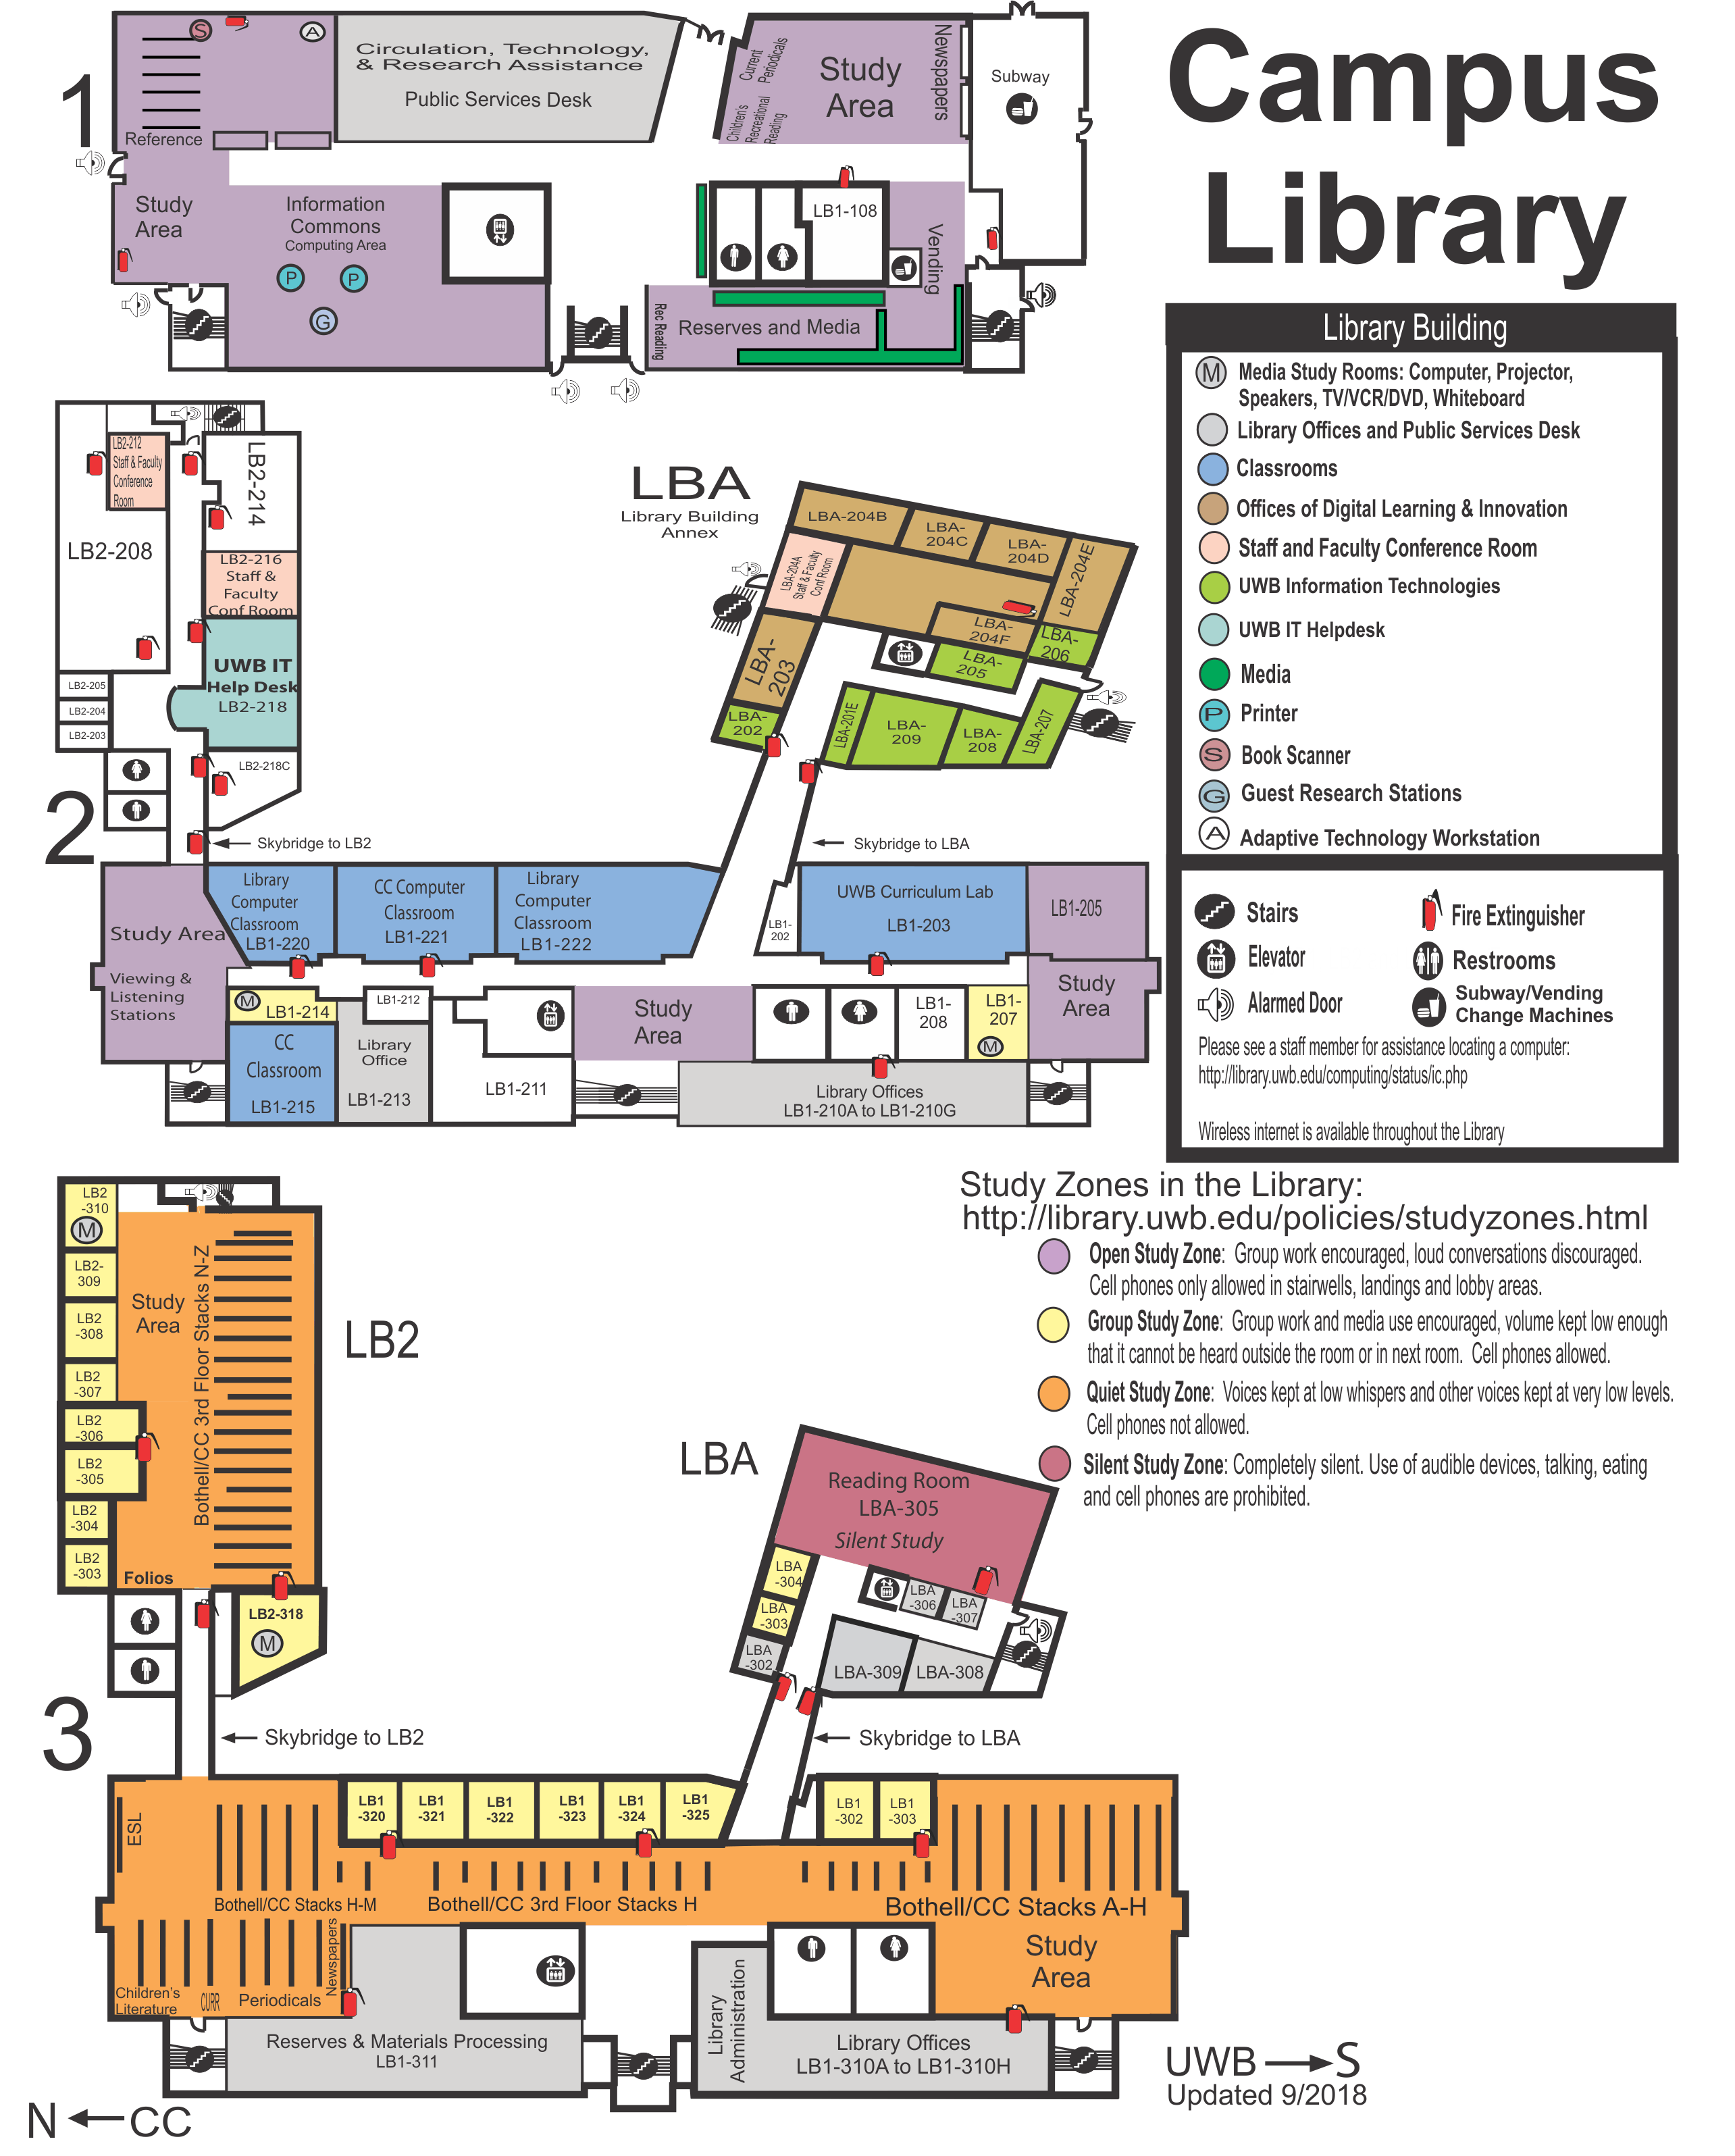 Image of Campus Library All floors map which links to PDF version of Map